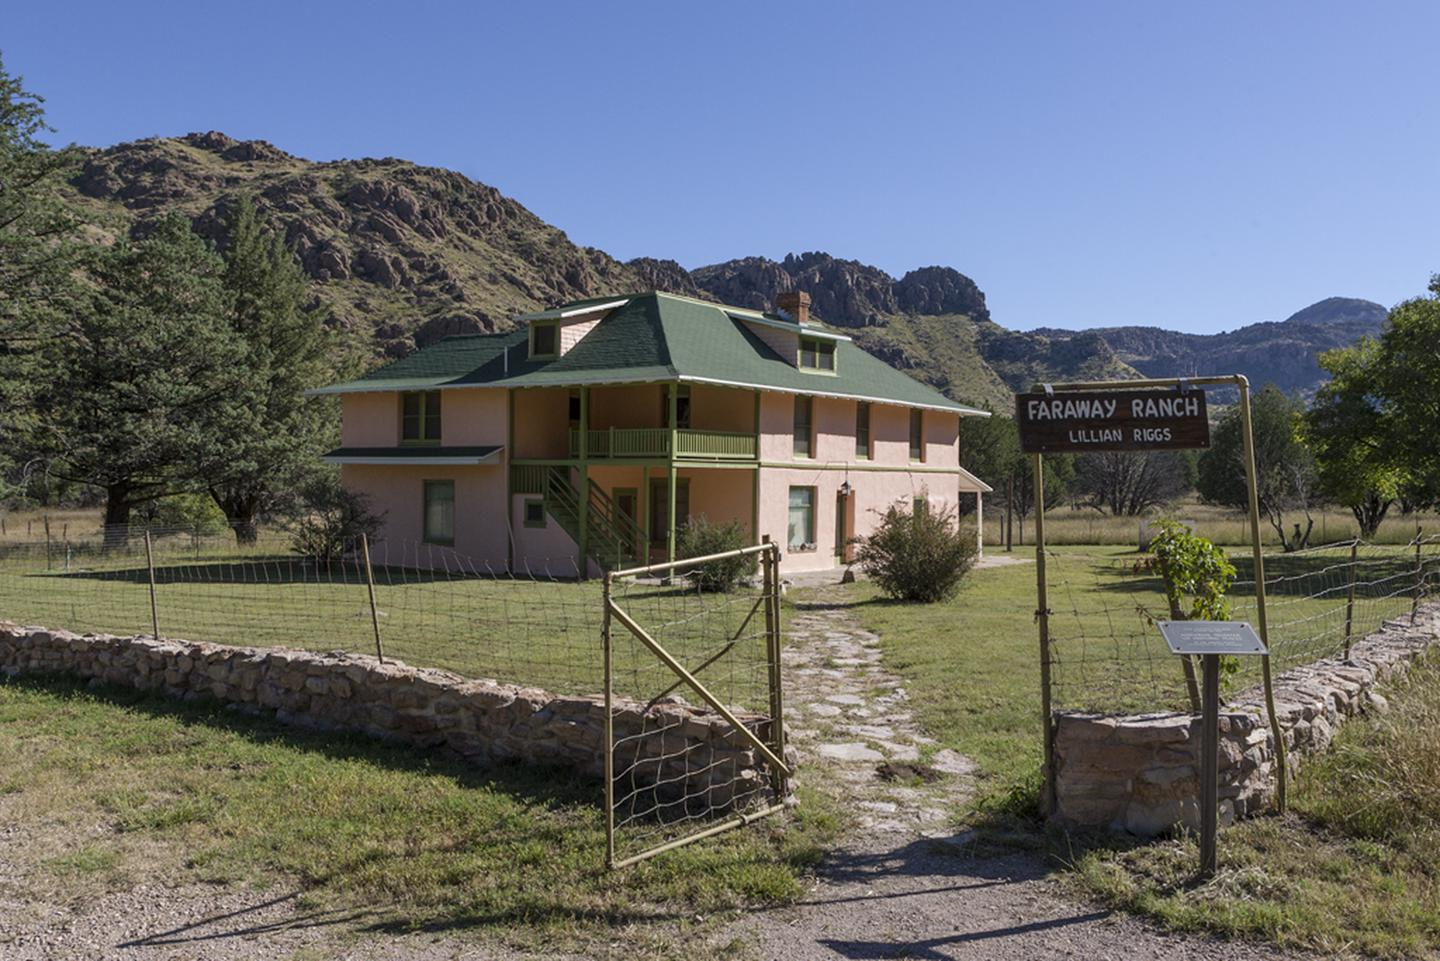 Faraway RanchFaraway Ranch preserves the heritage of early European settlers in the Chiricahua Mountains